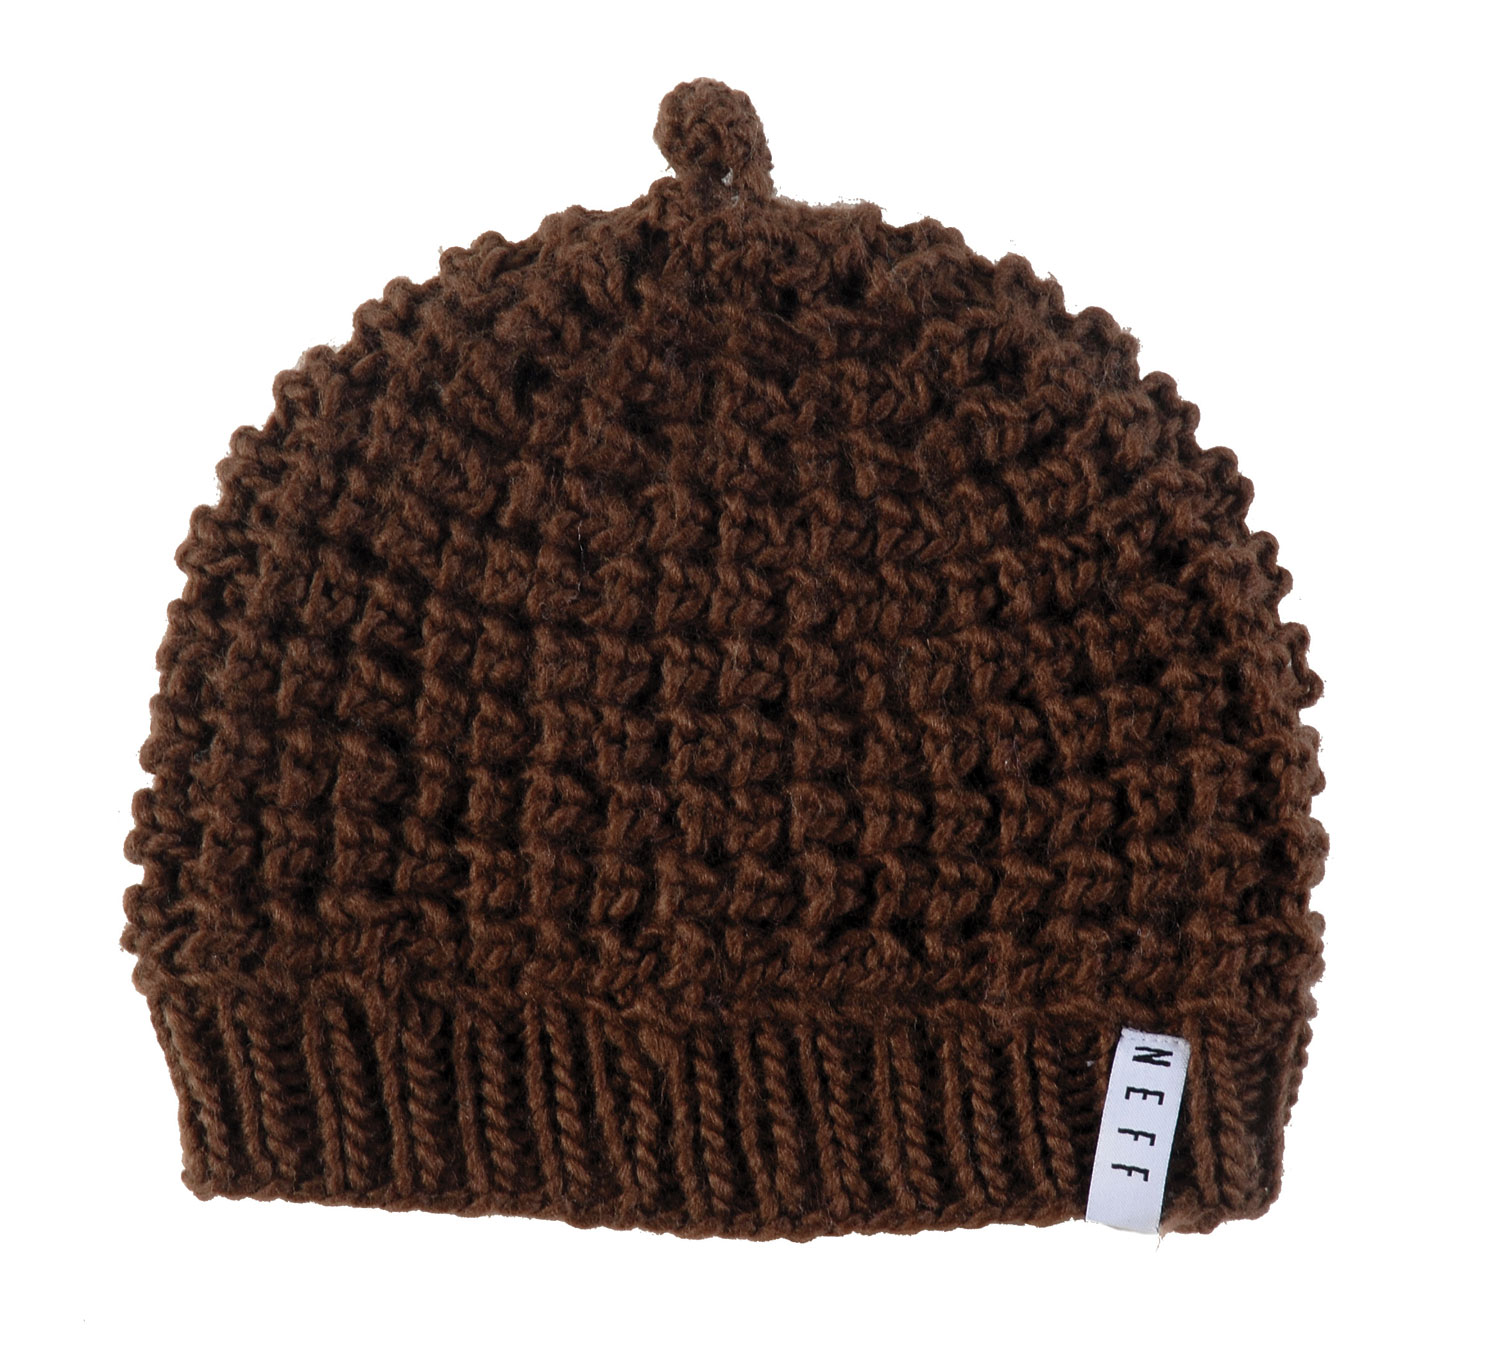 Snowboard 100% AcrylicKey Features of the Neff Harvest Beanie 100% Acrylic - $12.95